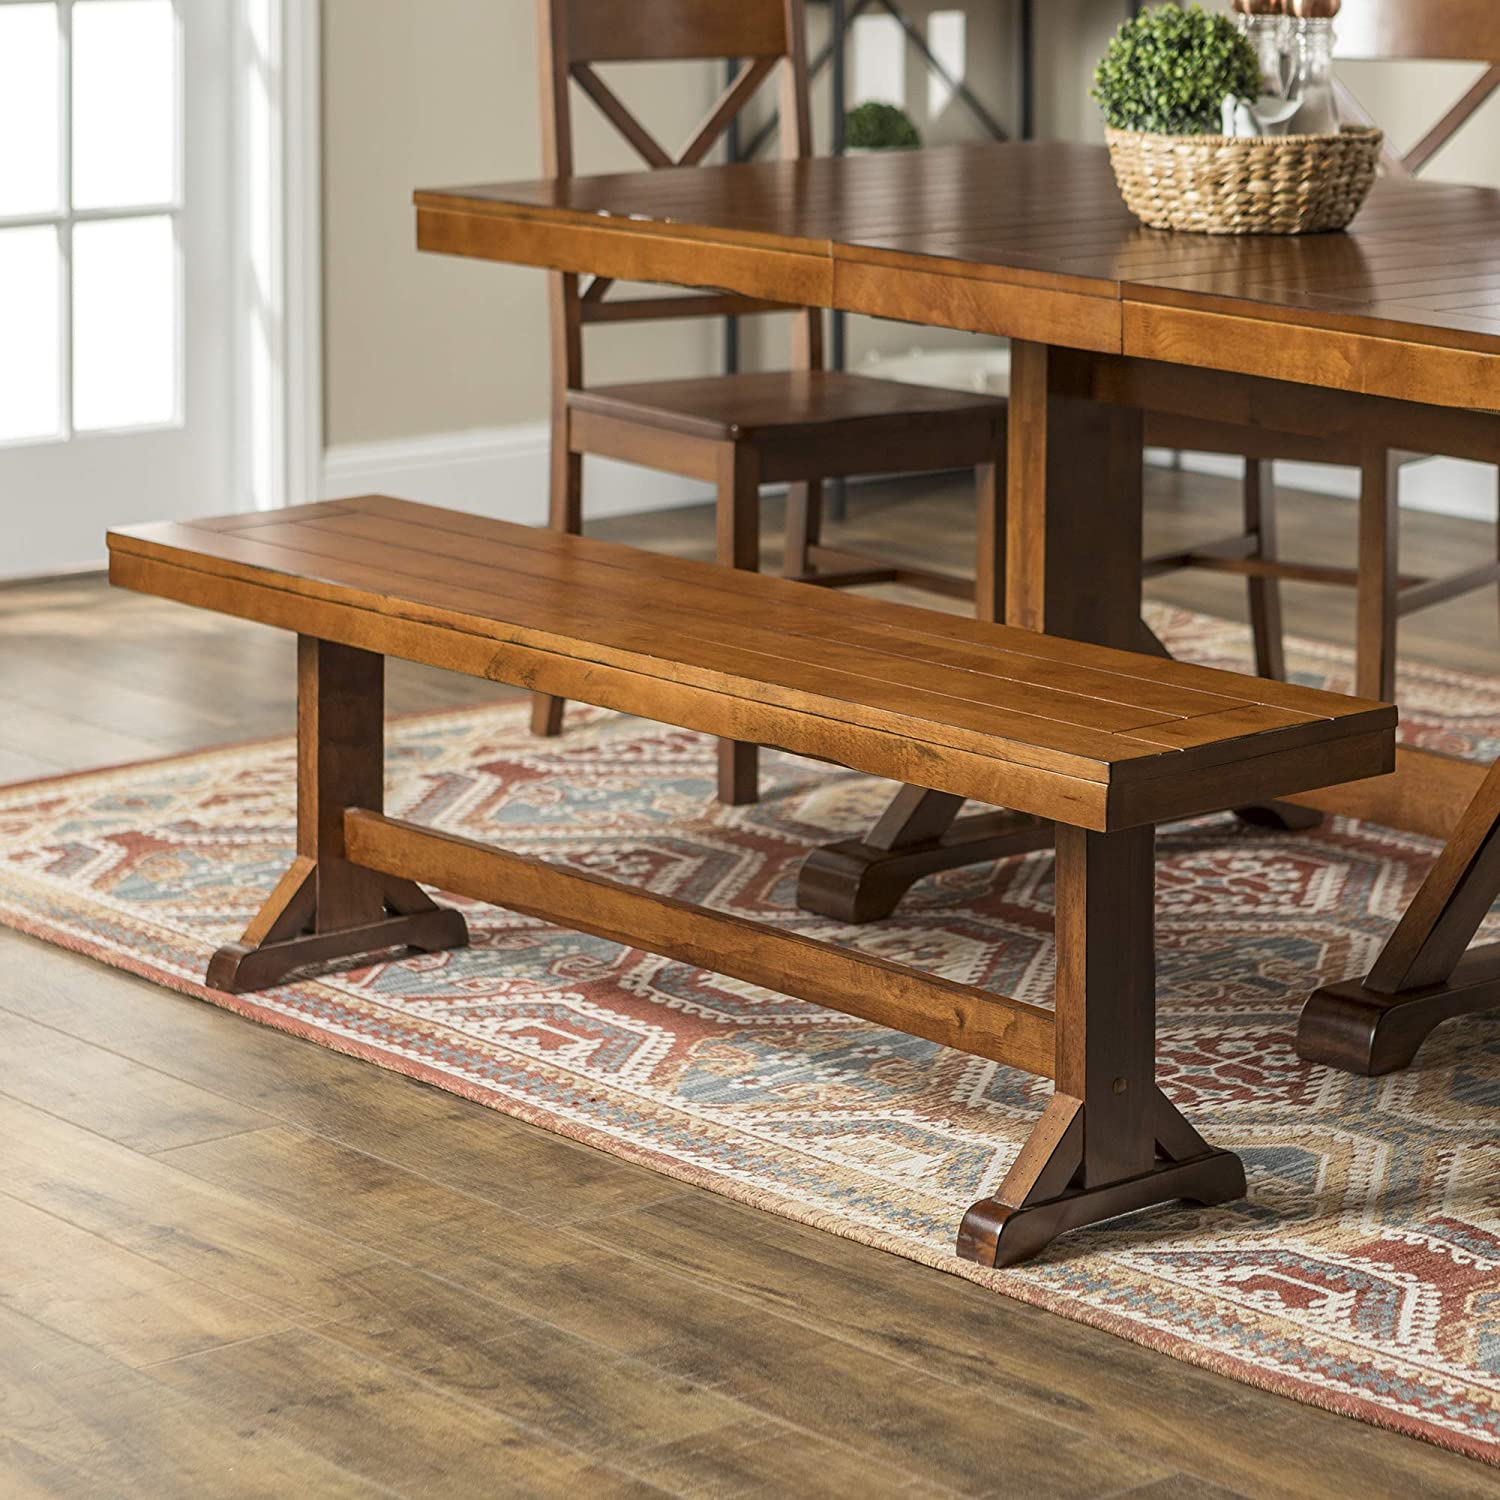 Amazon Com Walker Edison Furniture Solid Wood Brown Dining Bench Furniture Decor